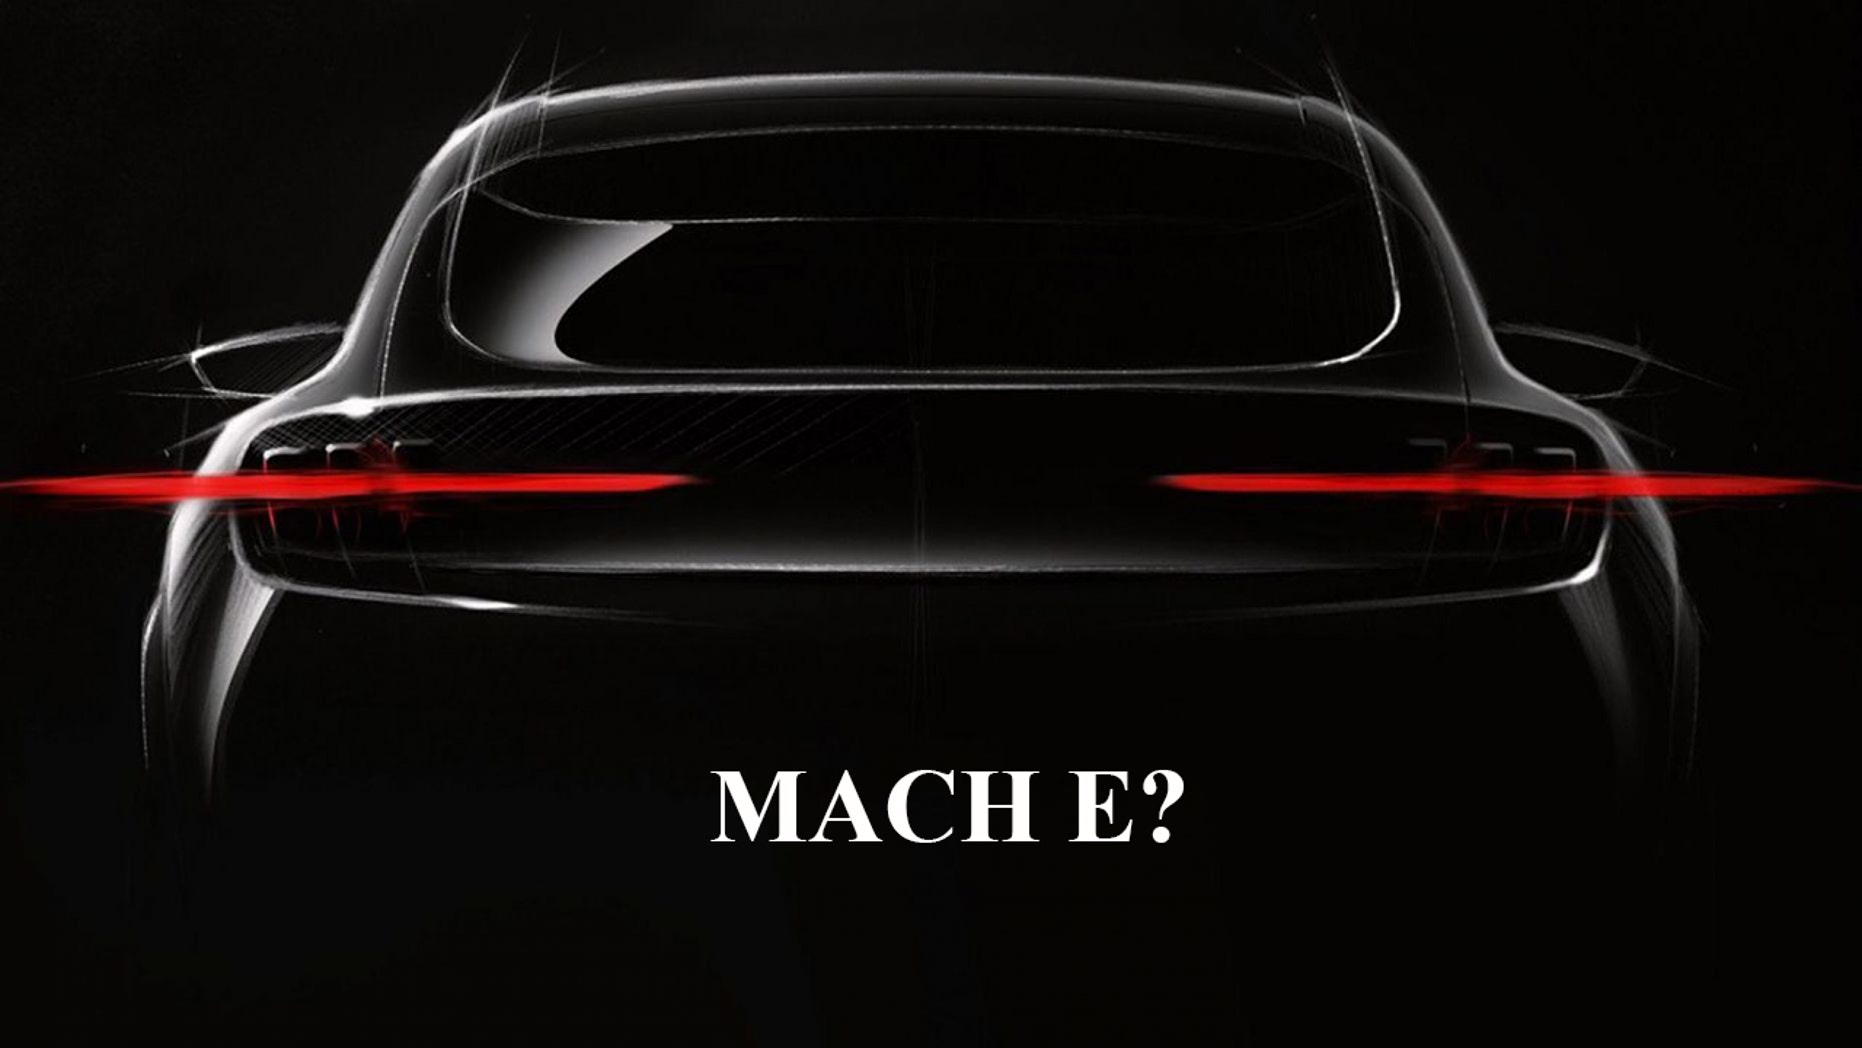 Ford released a teaser image of the electric SUV in September